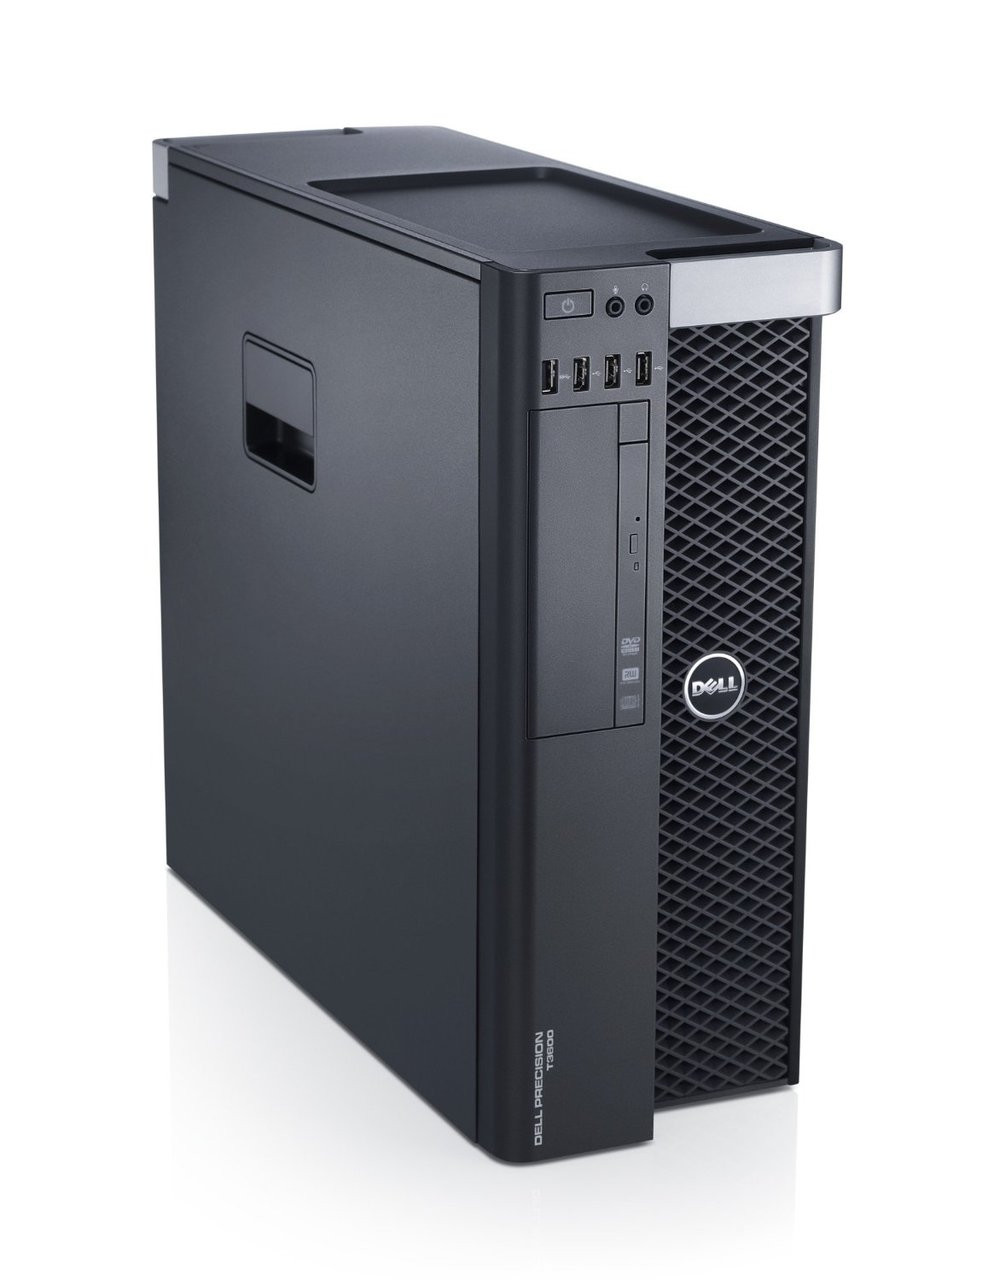 Dell Precision T3600 workstation - Left side view